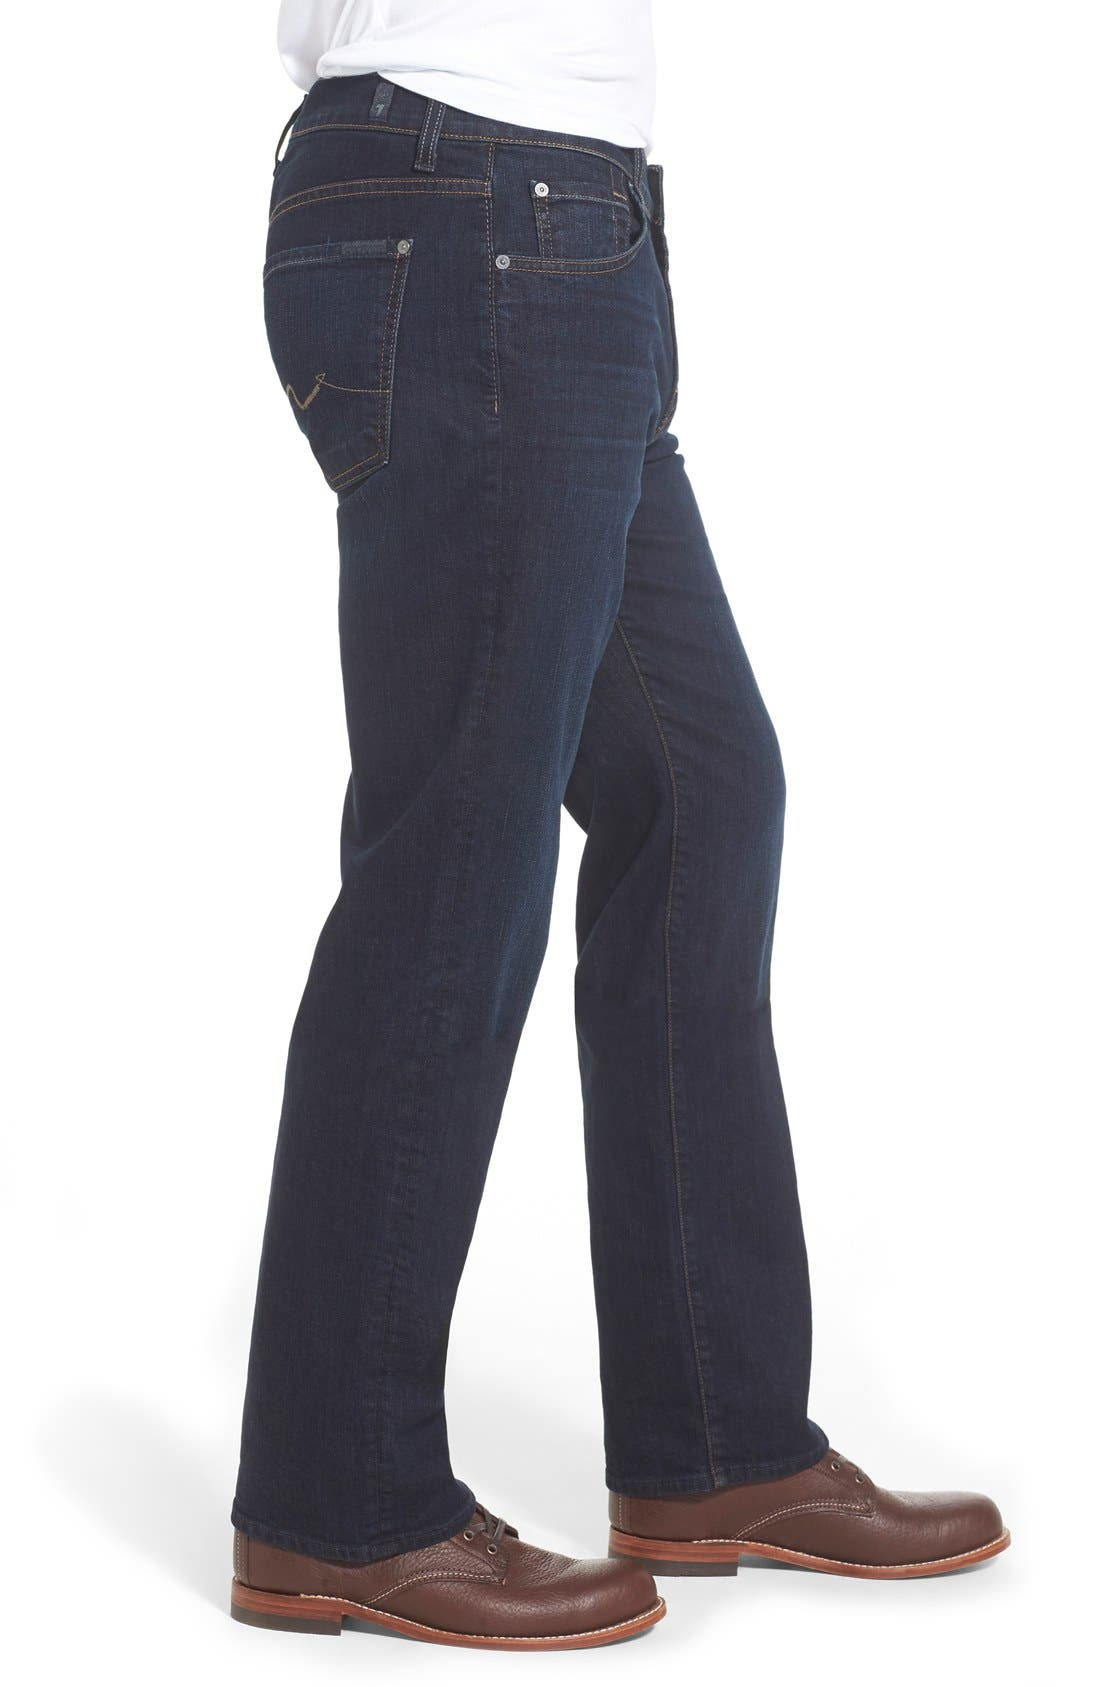 'Austyn- LuxePerformance' Relaxed Fit Jeans,                             Alternate thumbnail 4, color,